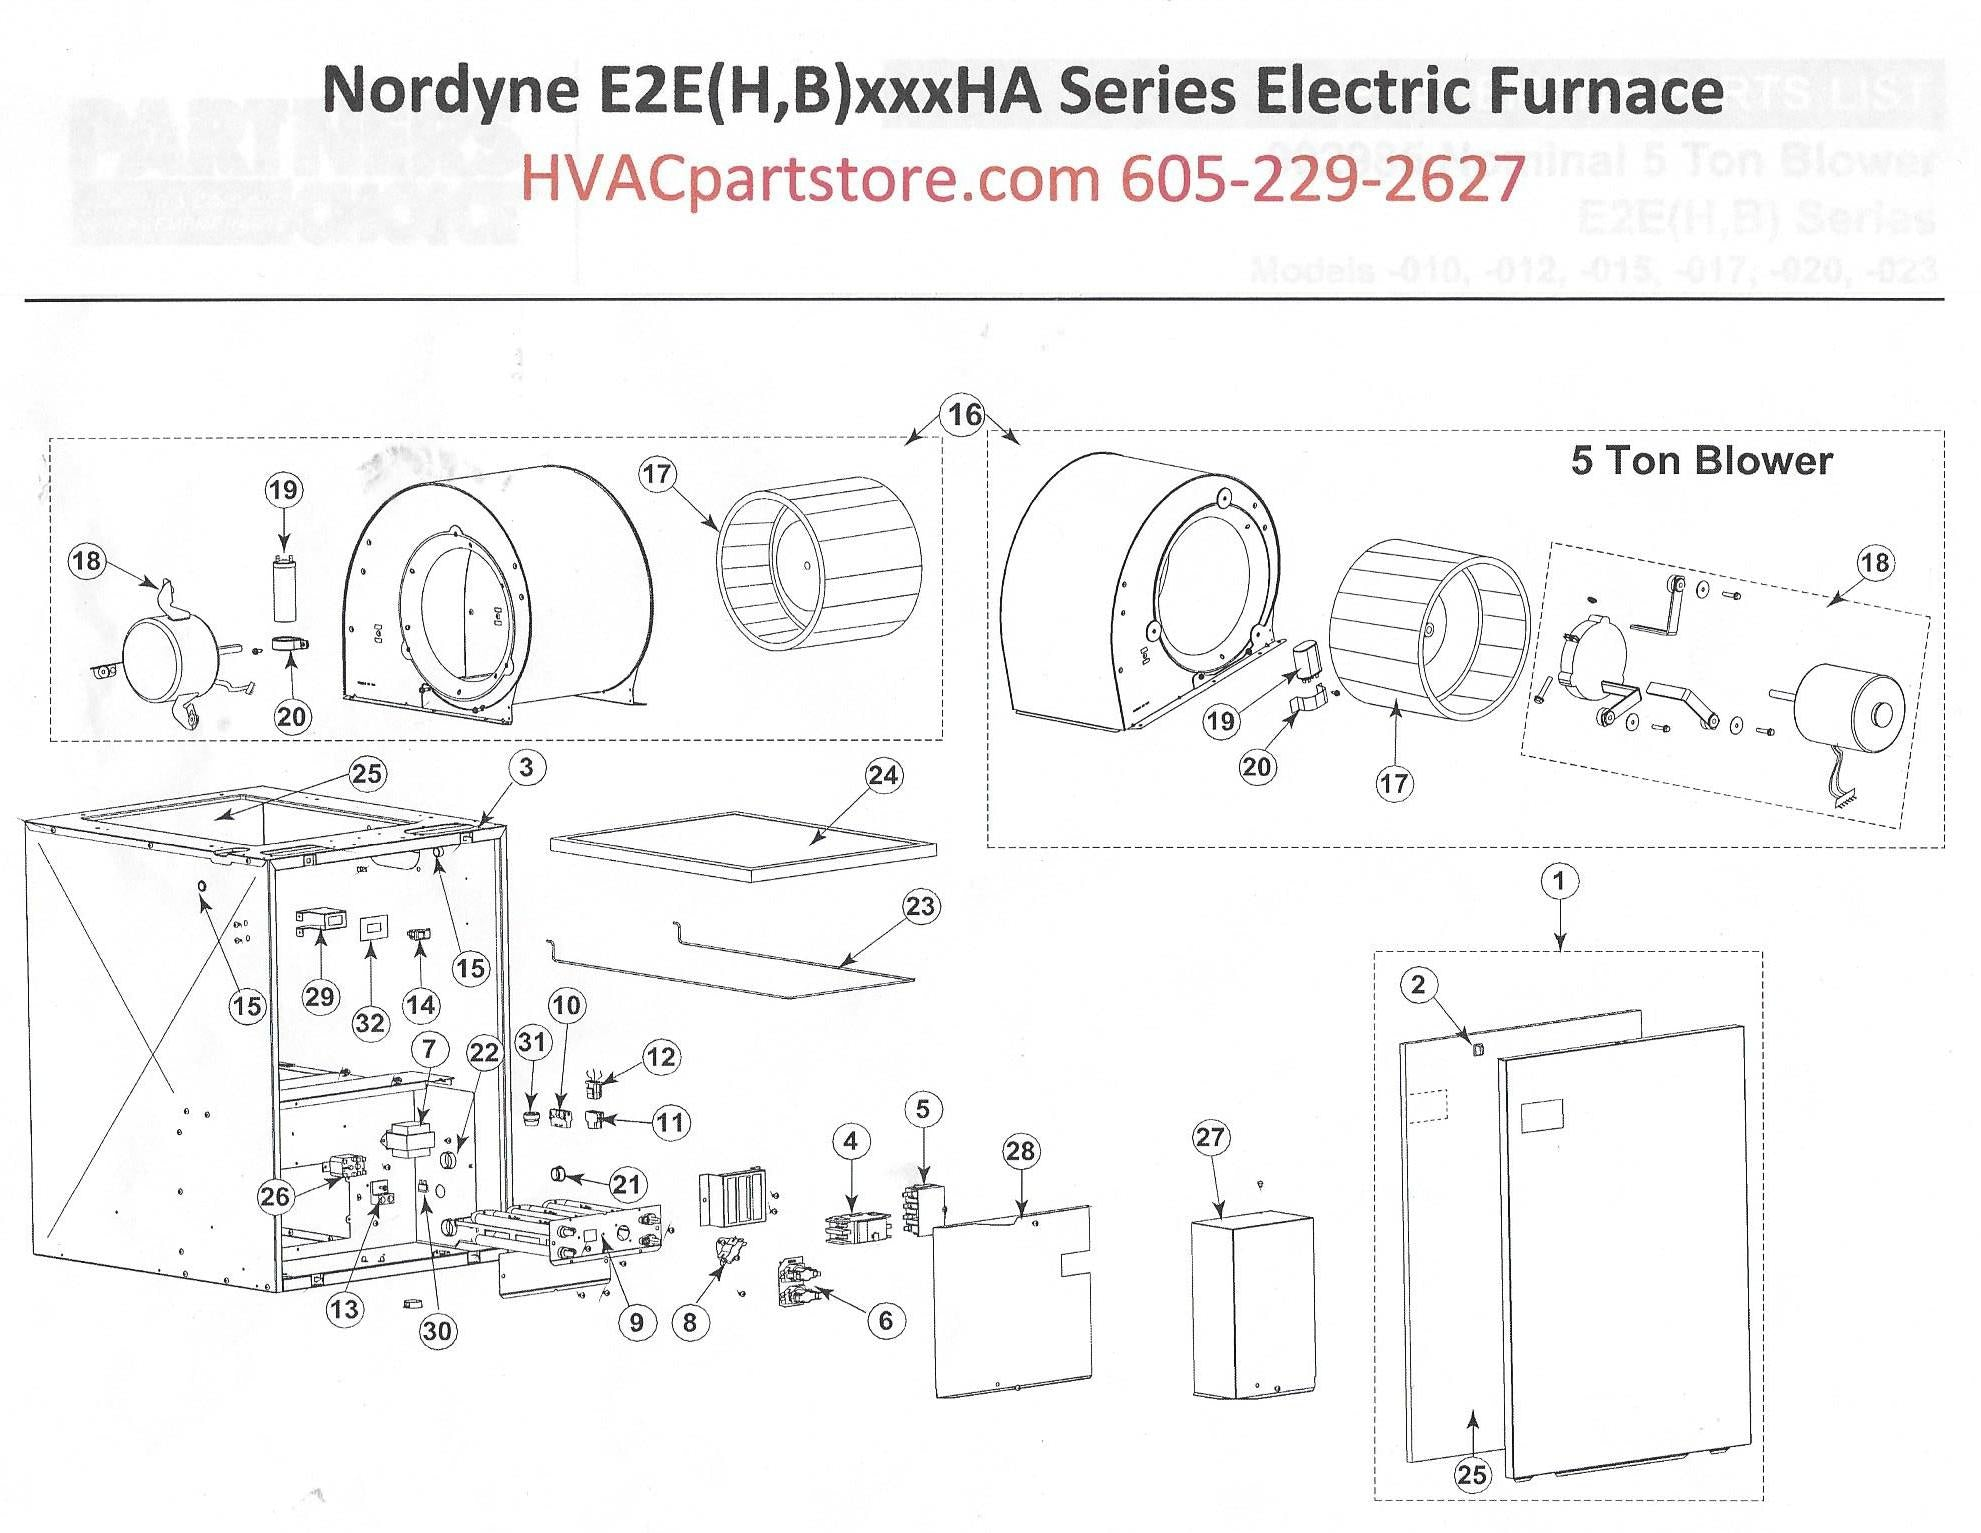 E2HADiagram_2abb159a 7eb1 4d20 871c c9c3b5366288?7399571456907368943 e2eb015hb nordyne electric furnace parts hvacpartstore nordyne wiring diagram electric furnace at pacquiaovsvargaslive.co